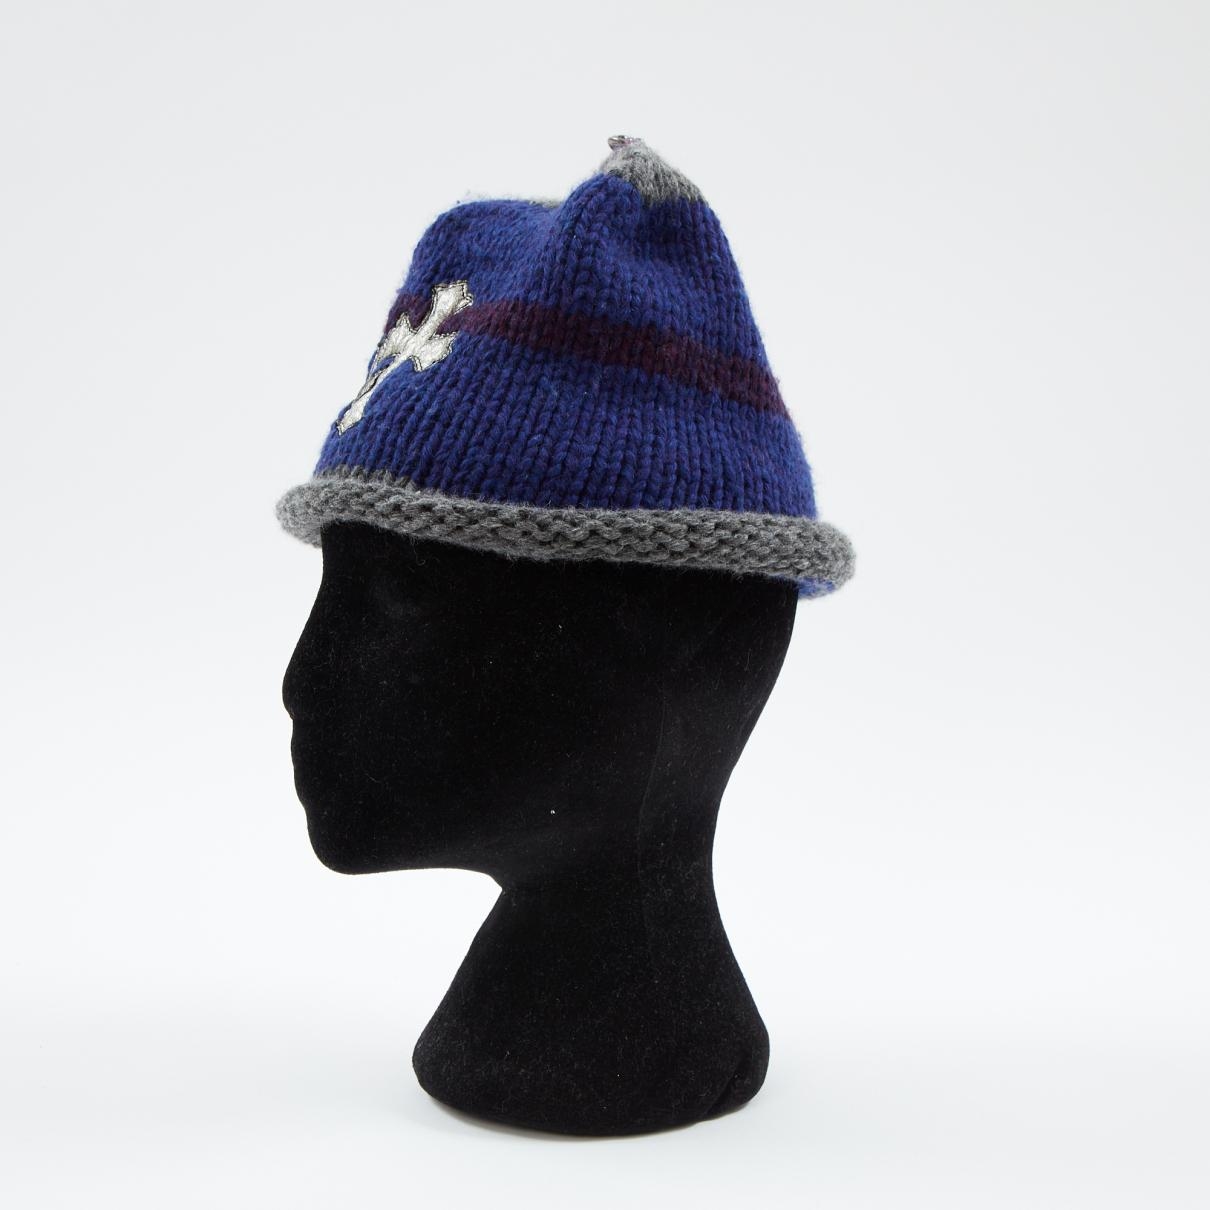 fe0f3015149 Chrome Hearts Multicolour Wool Hats   Pull On Hats in Blue for Men ...